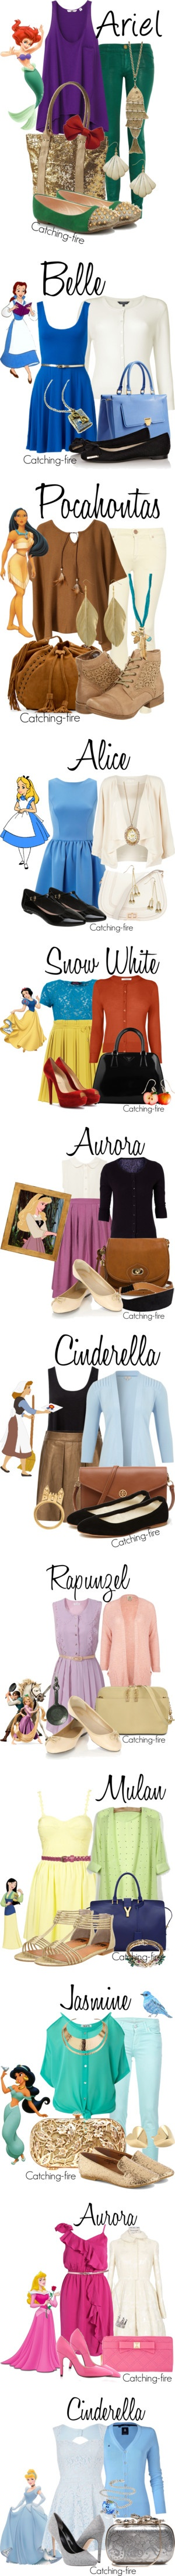 These are so cute! Dress up like your favorite disney characters... but in a modern way! By Catching Fire